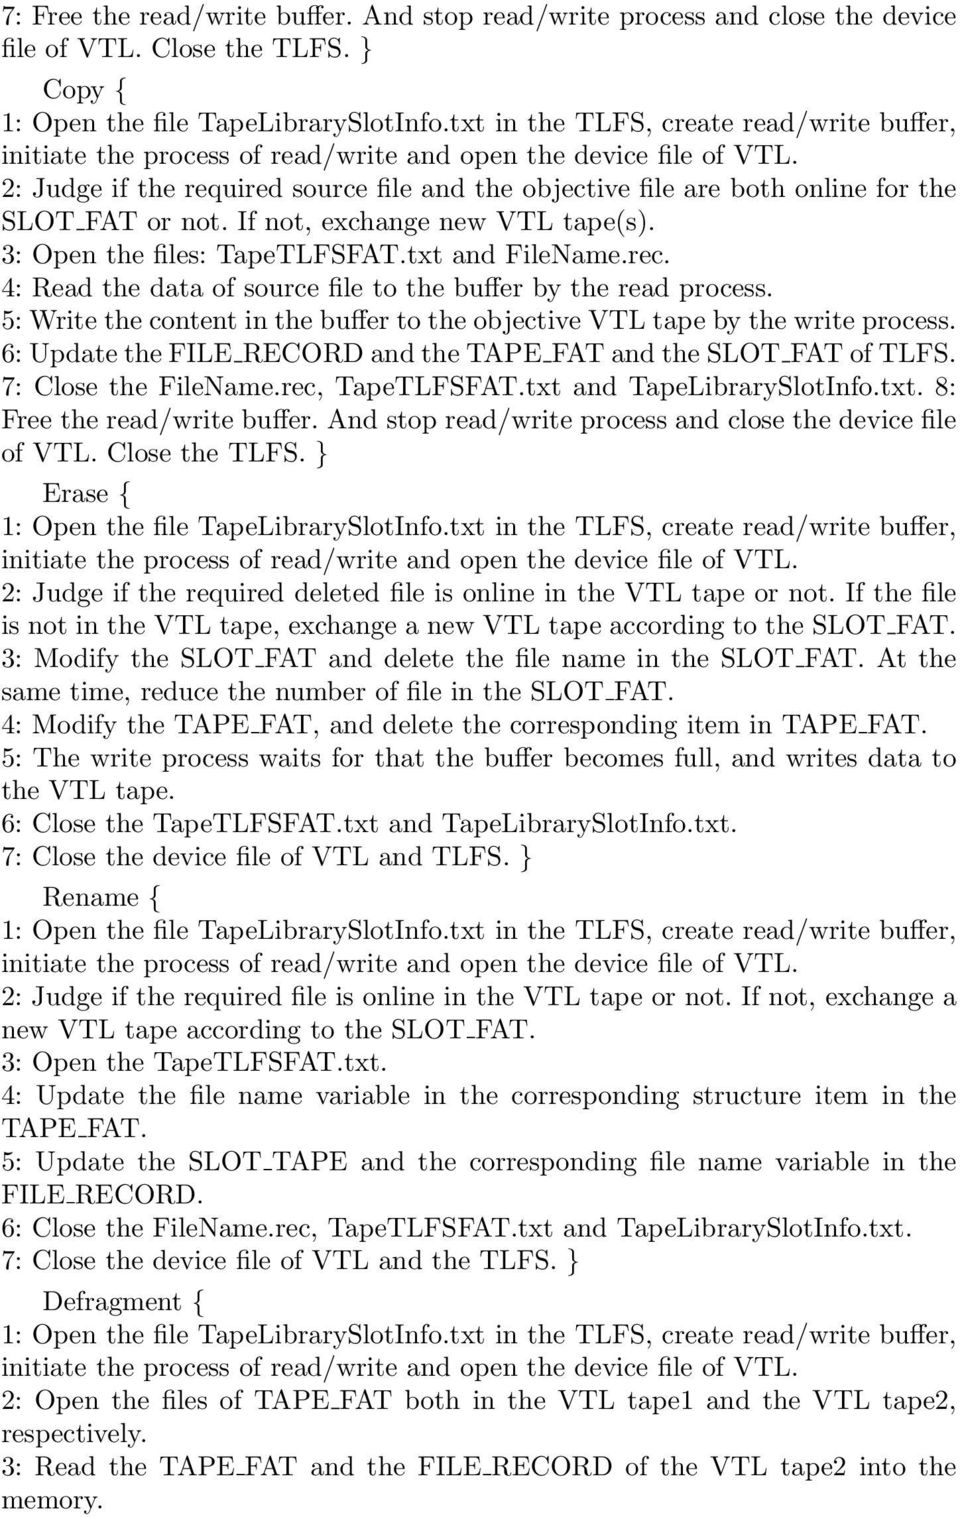 4: Read the data of source file to the buffer by the read process. 5: Write the content in the buffer to the objective VTL tape by the write process.